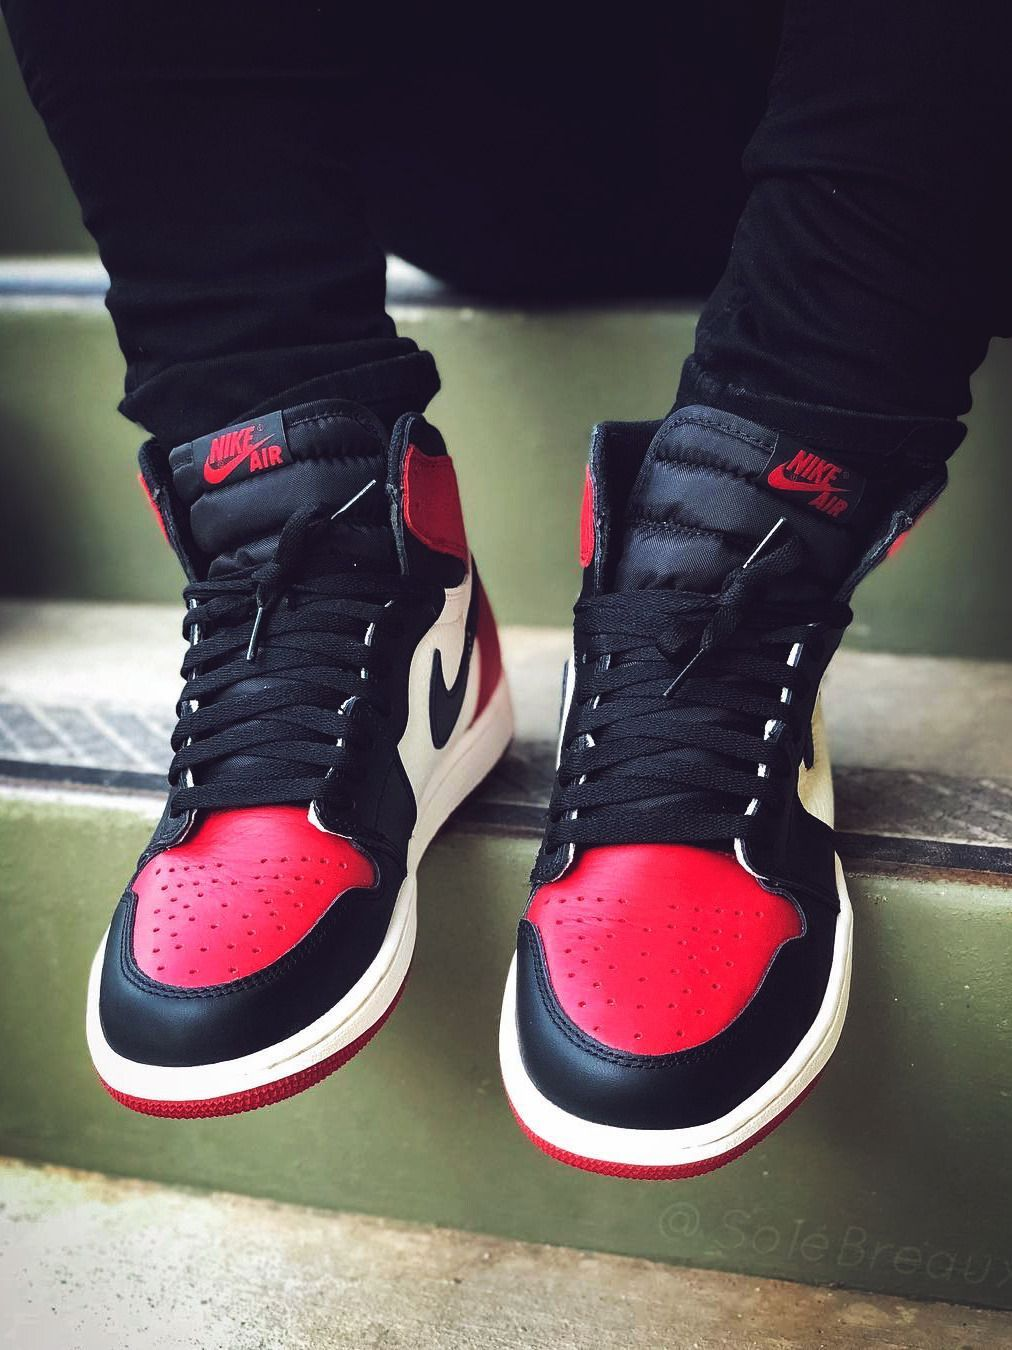 premium selection 501e1 86b9f Nike Air Jordan 1 Bred Toe - 2018 (by solebreaux ...